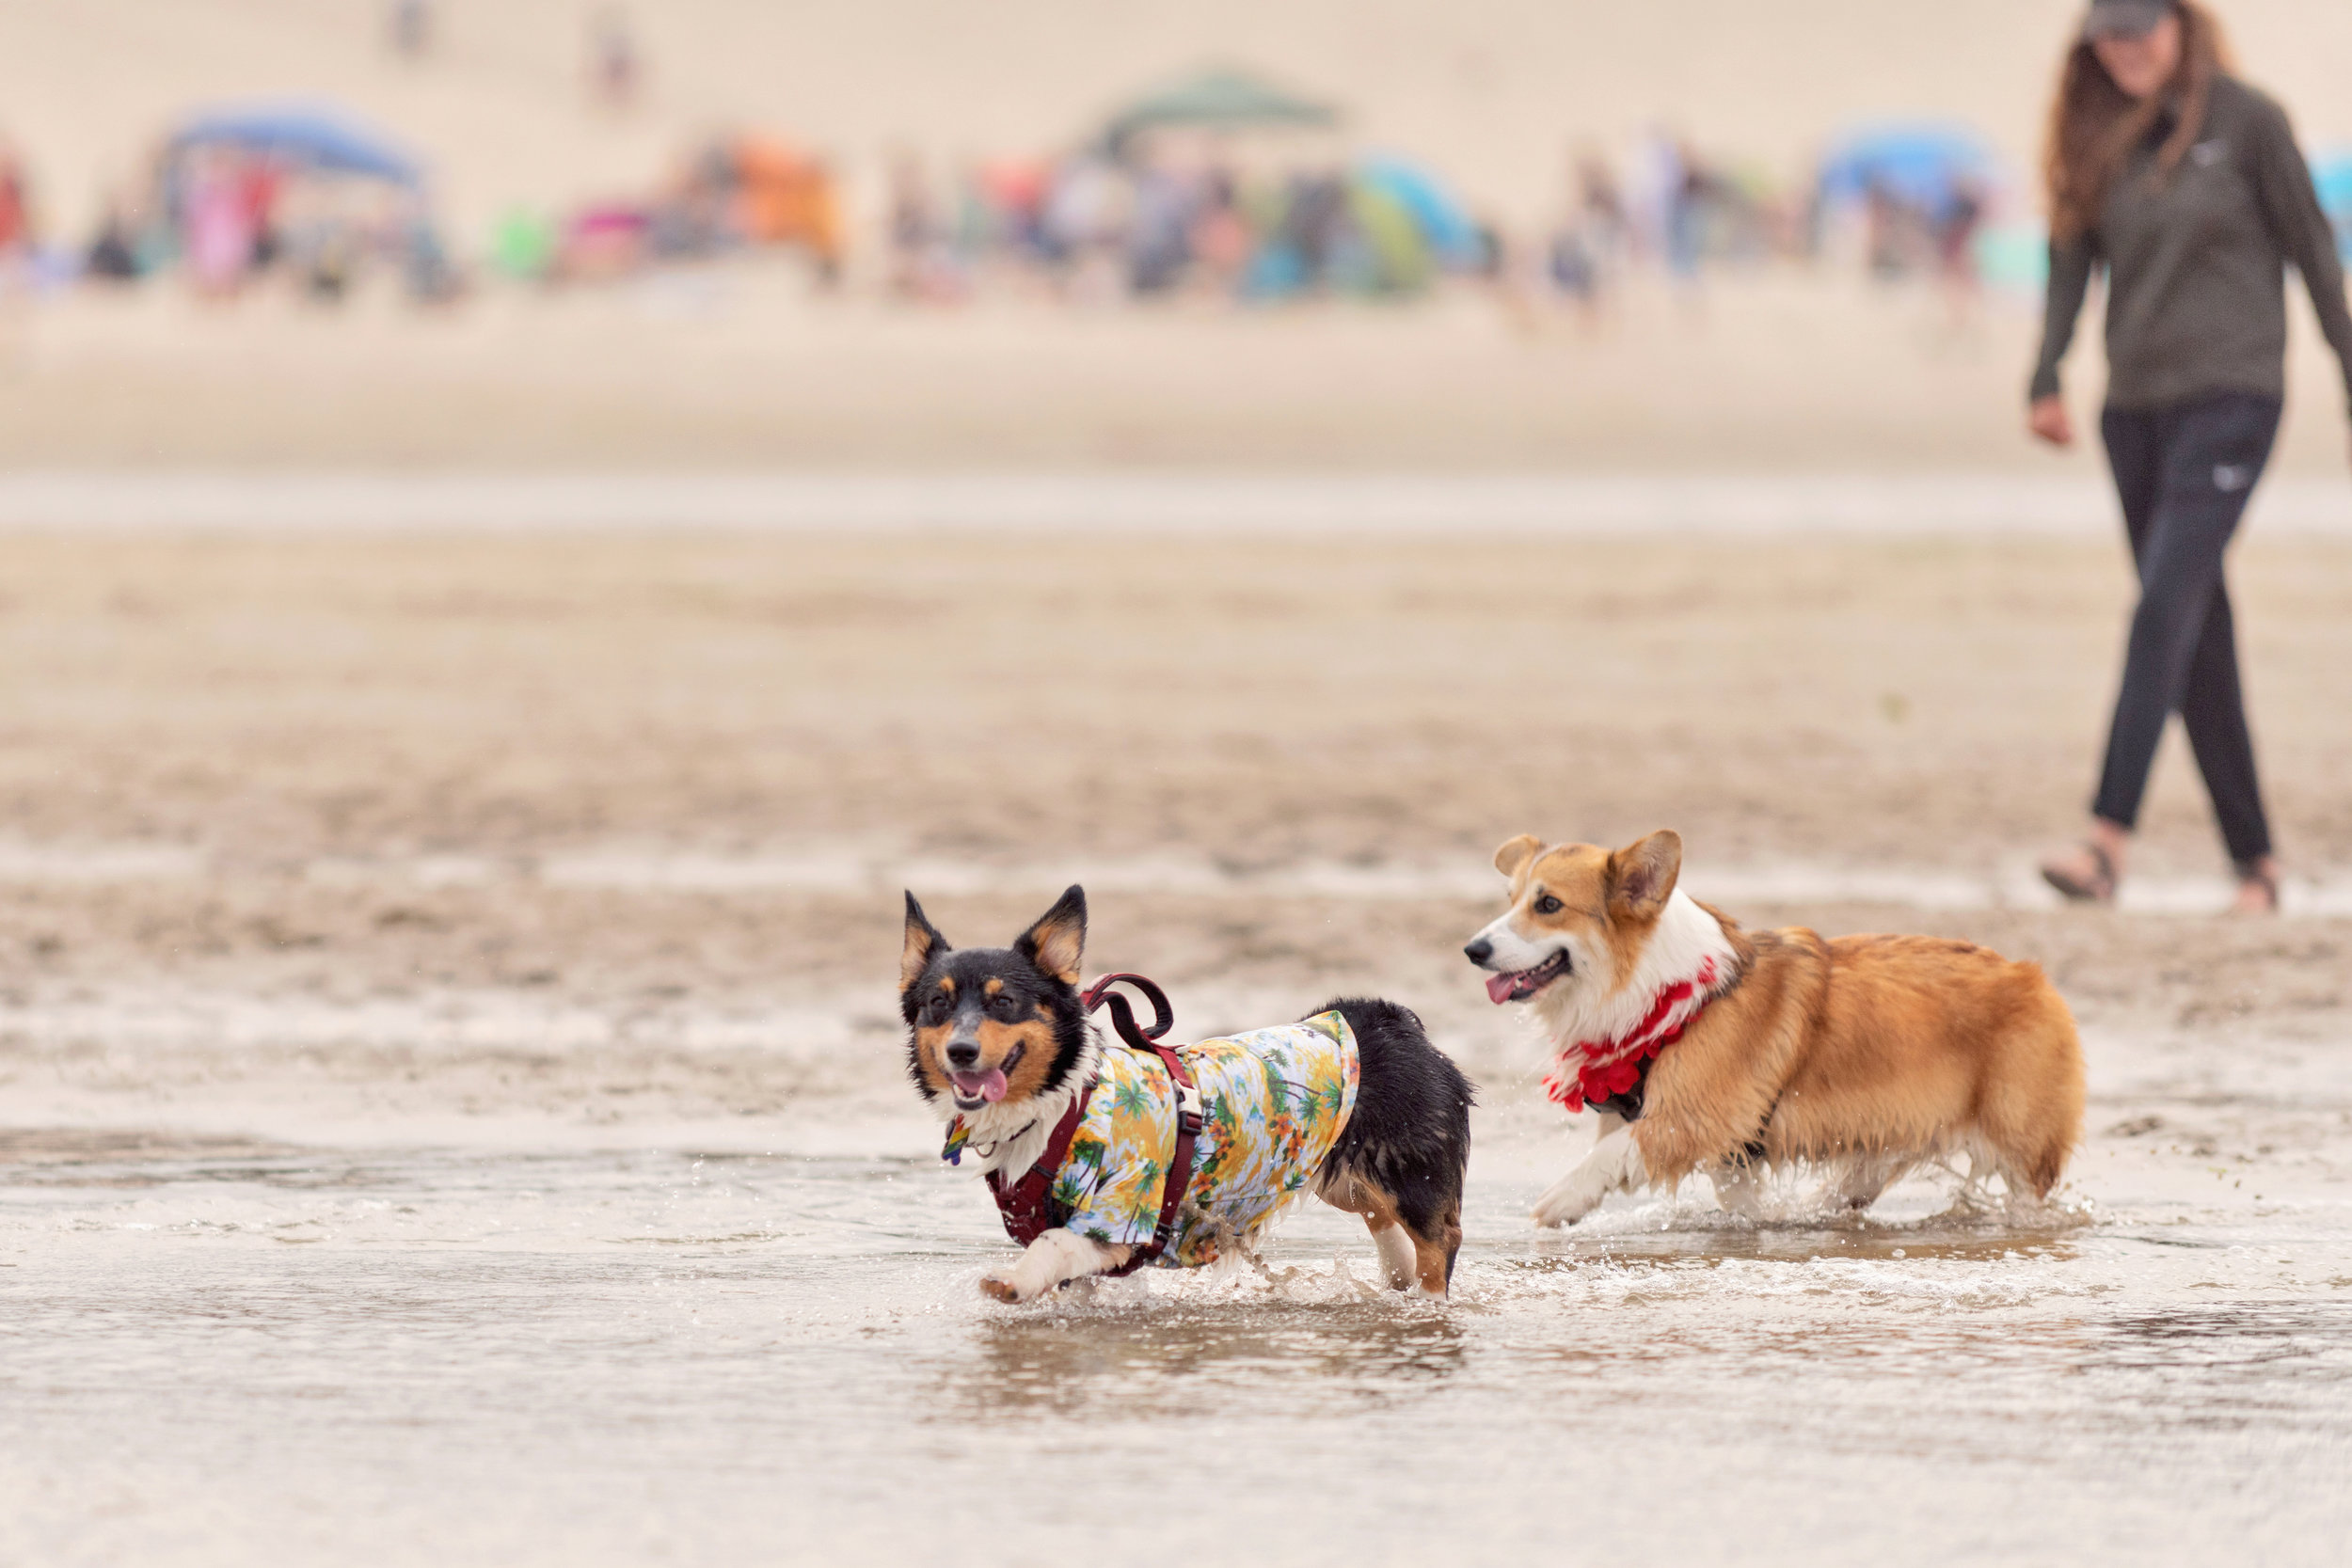 Corgis at the beach. Photo by Danyel Rogers